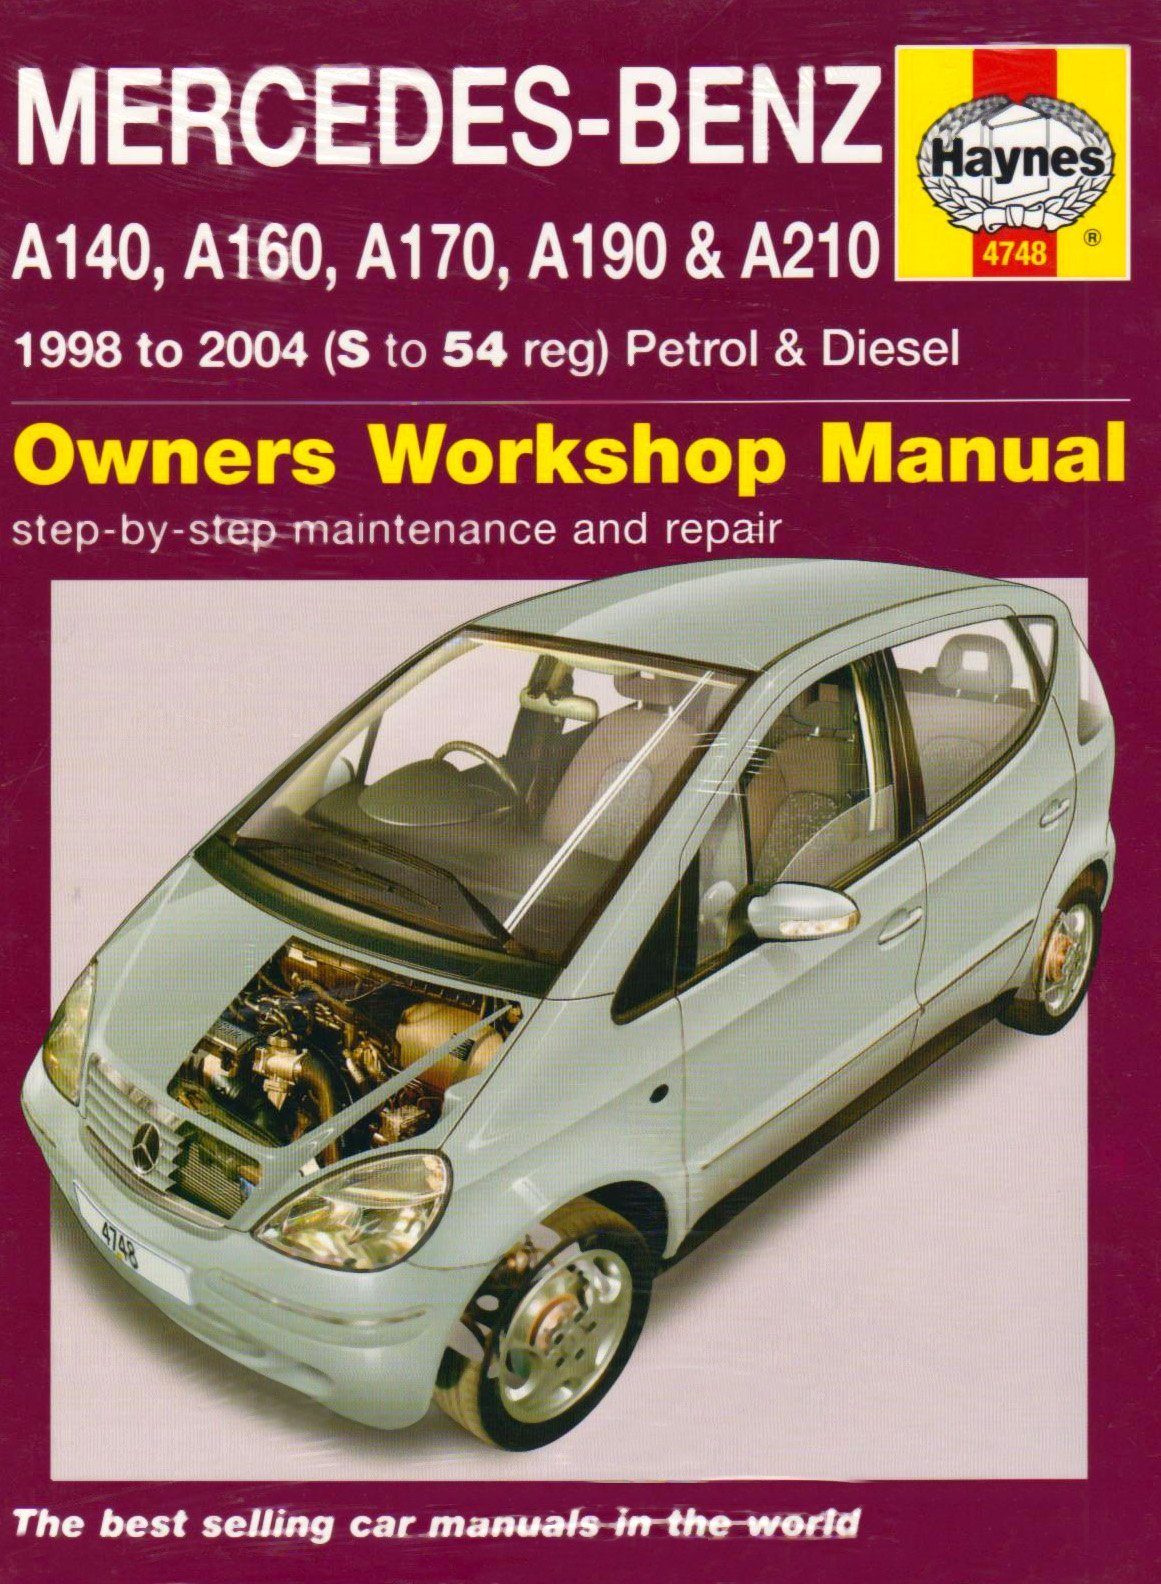 Mercedes-Benz A-Class Petrol & Diesel 1998 - 2004 (S to 54 reg) Haynes  Owners Workshop Manual by Peter T.Gill (2008) Hardcover: Amazon.com: Books